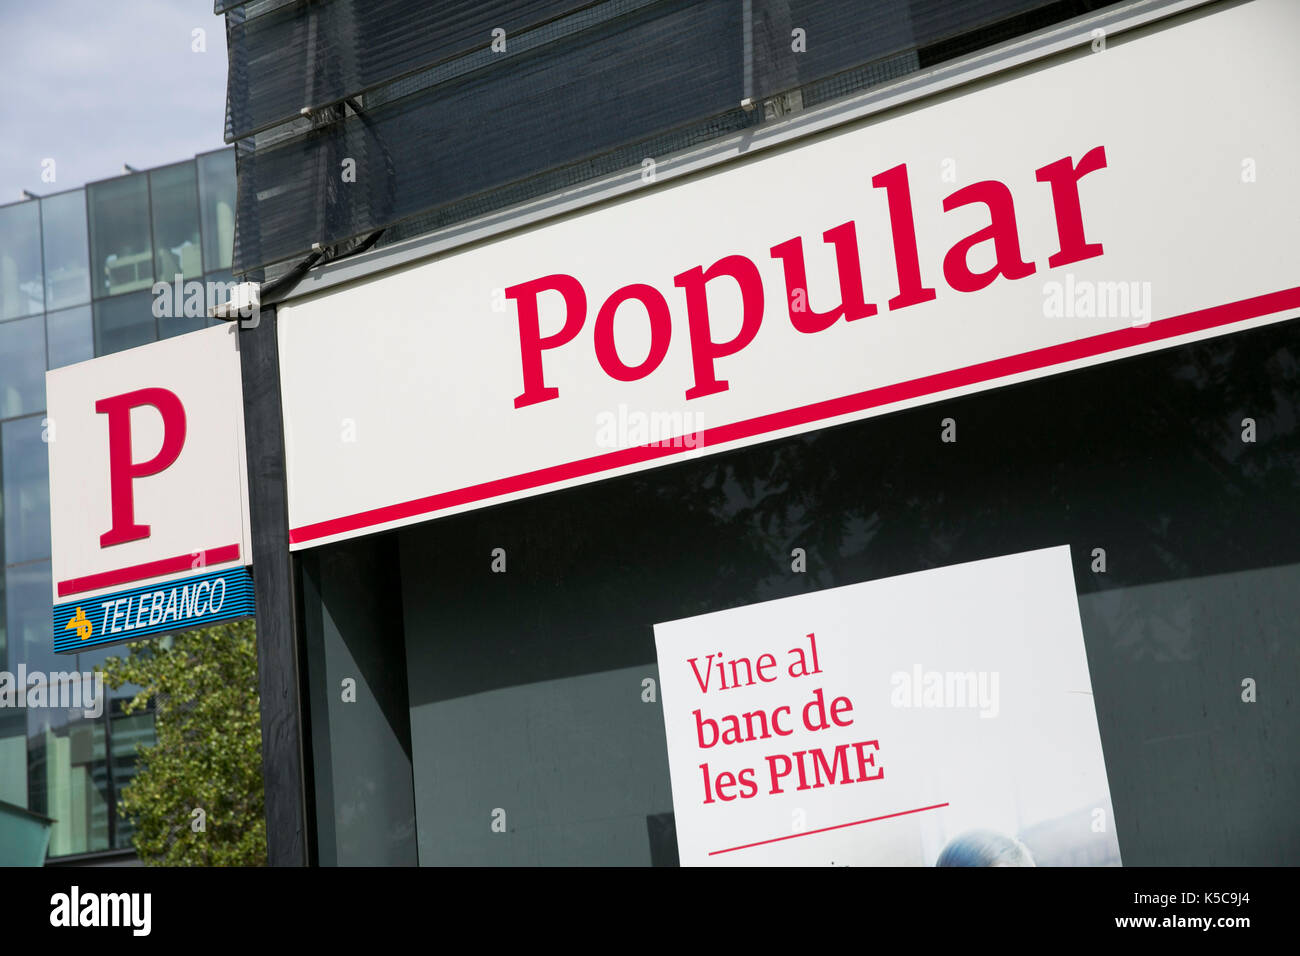 A logo sign outside of a Banco Popular branch in Barcelona, Spain on August 30, 2017. - Stock Image